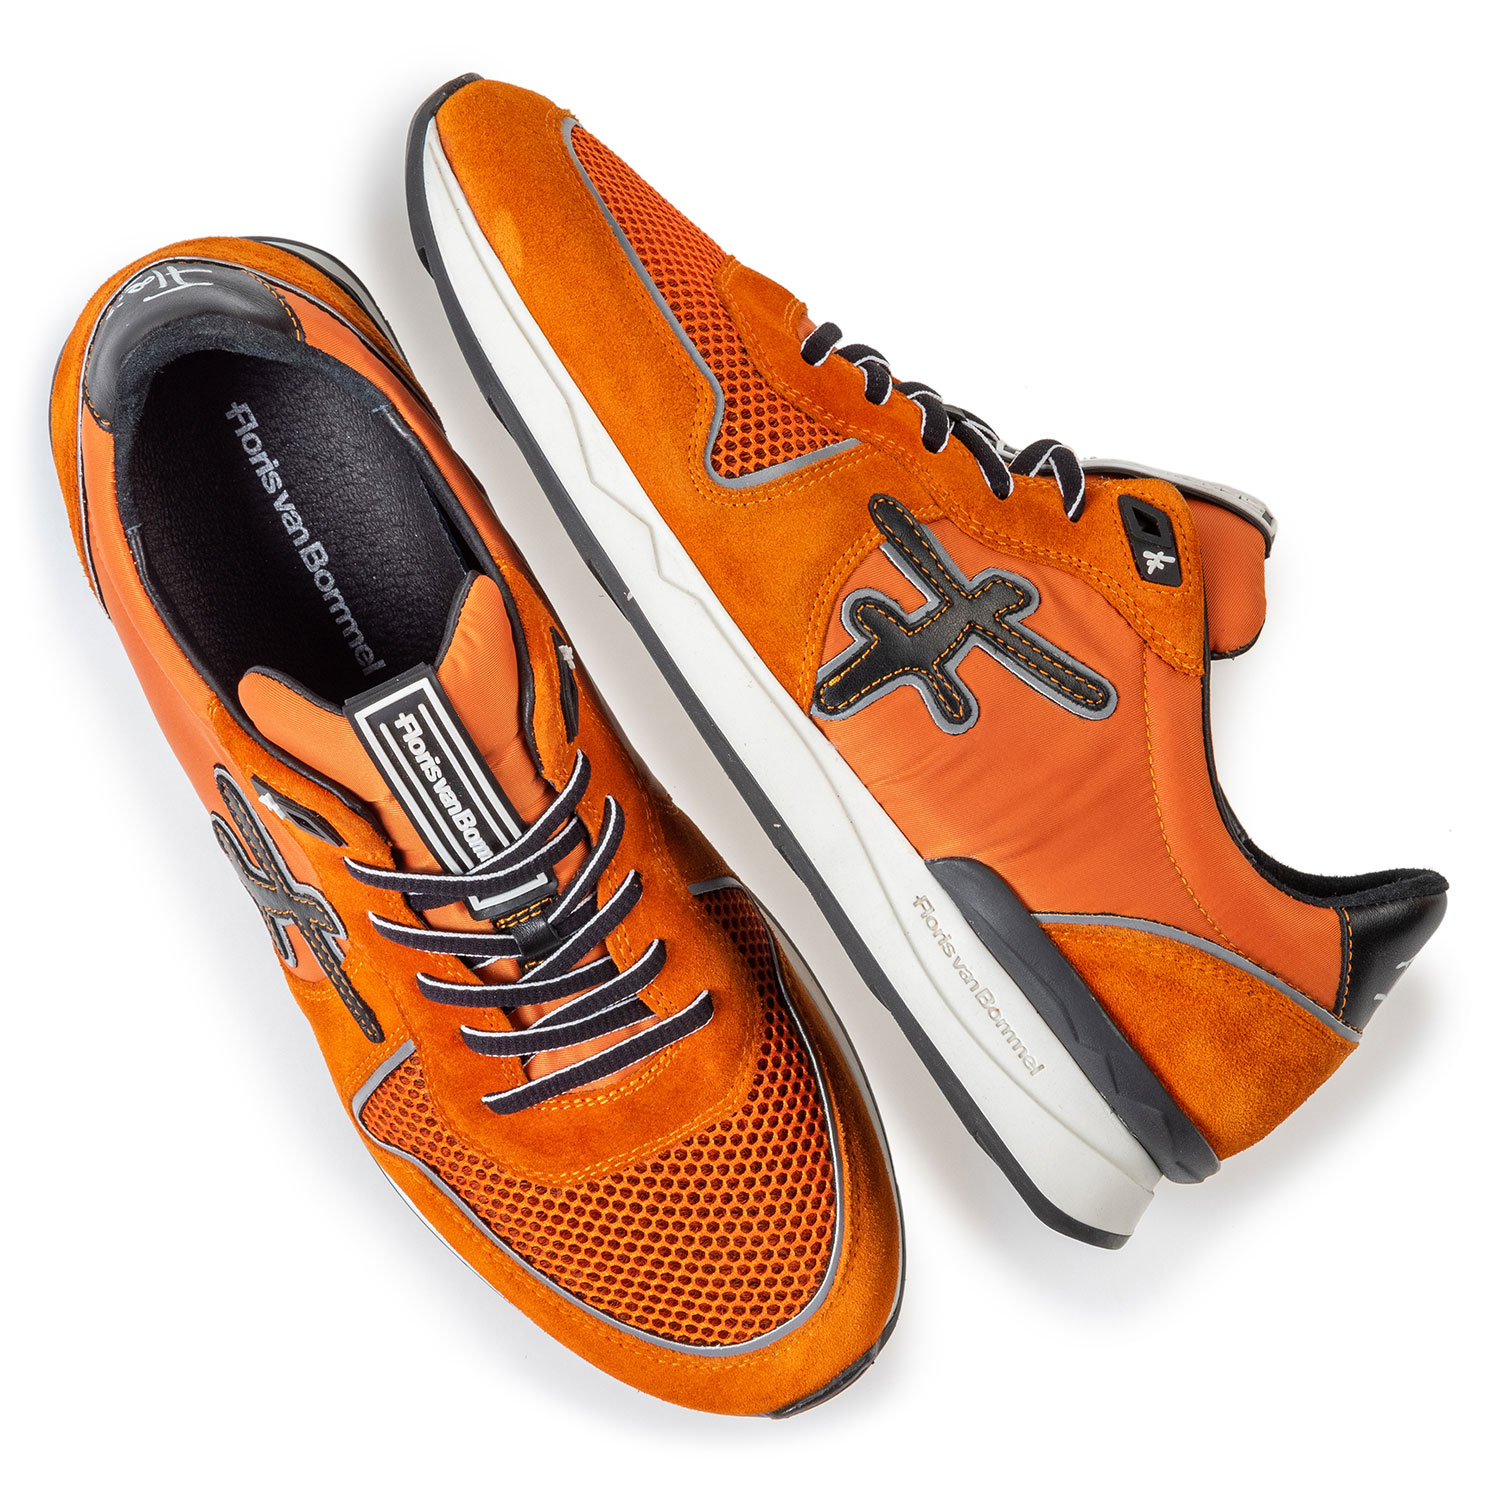 16284/02 - Sneaker orange Wildleder